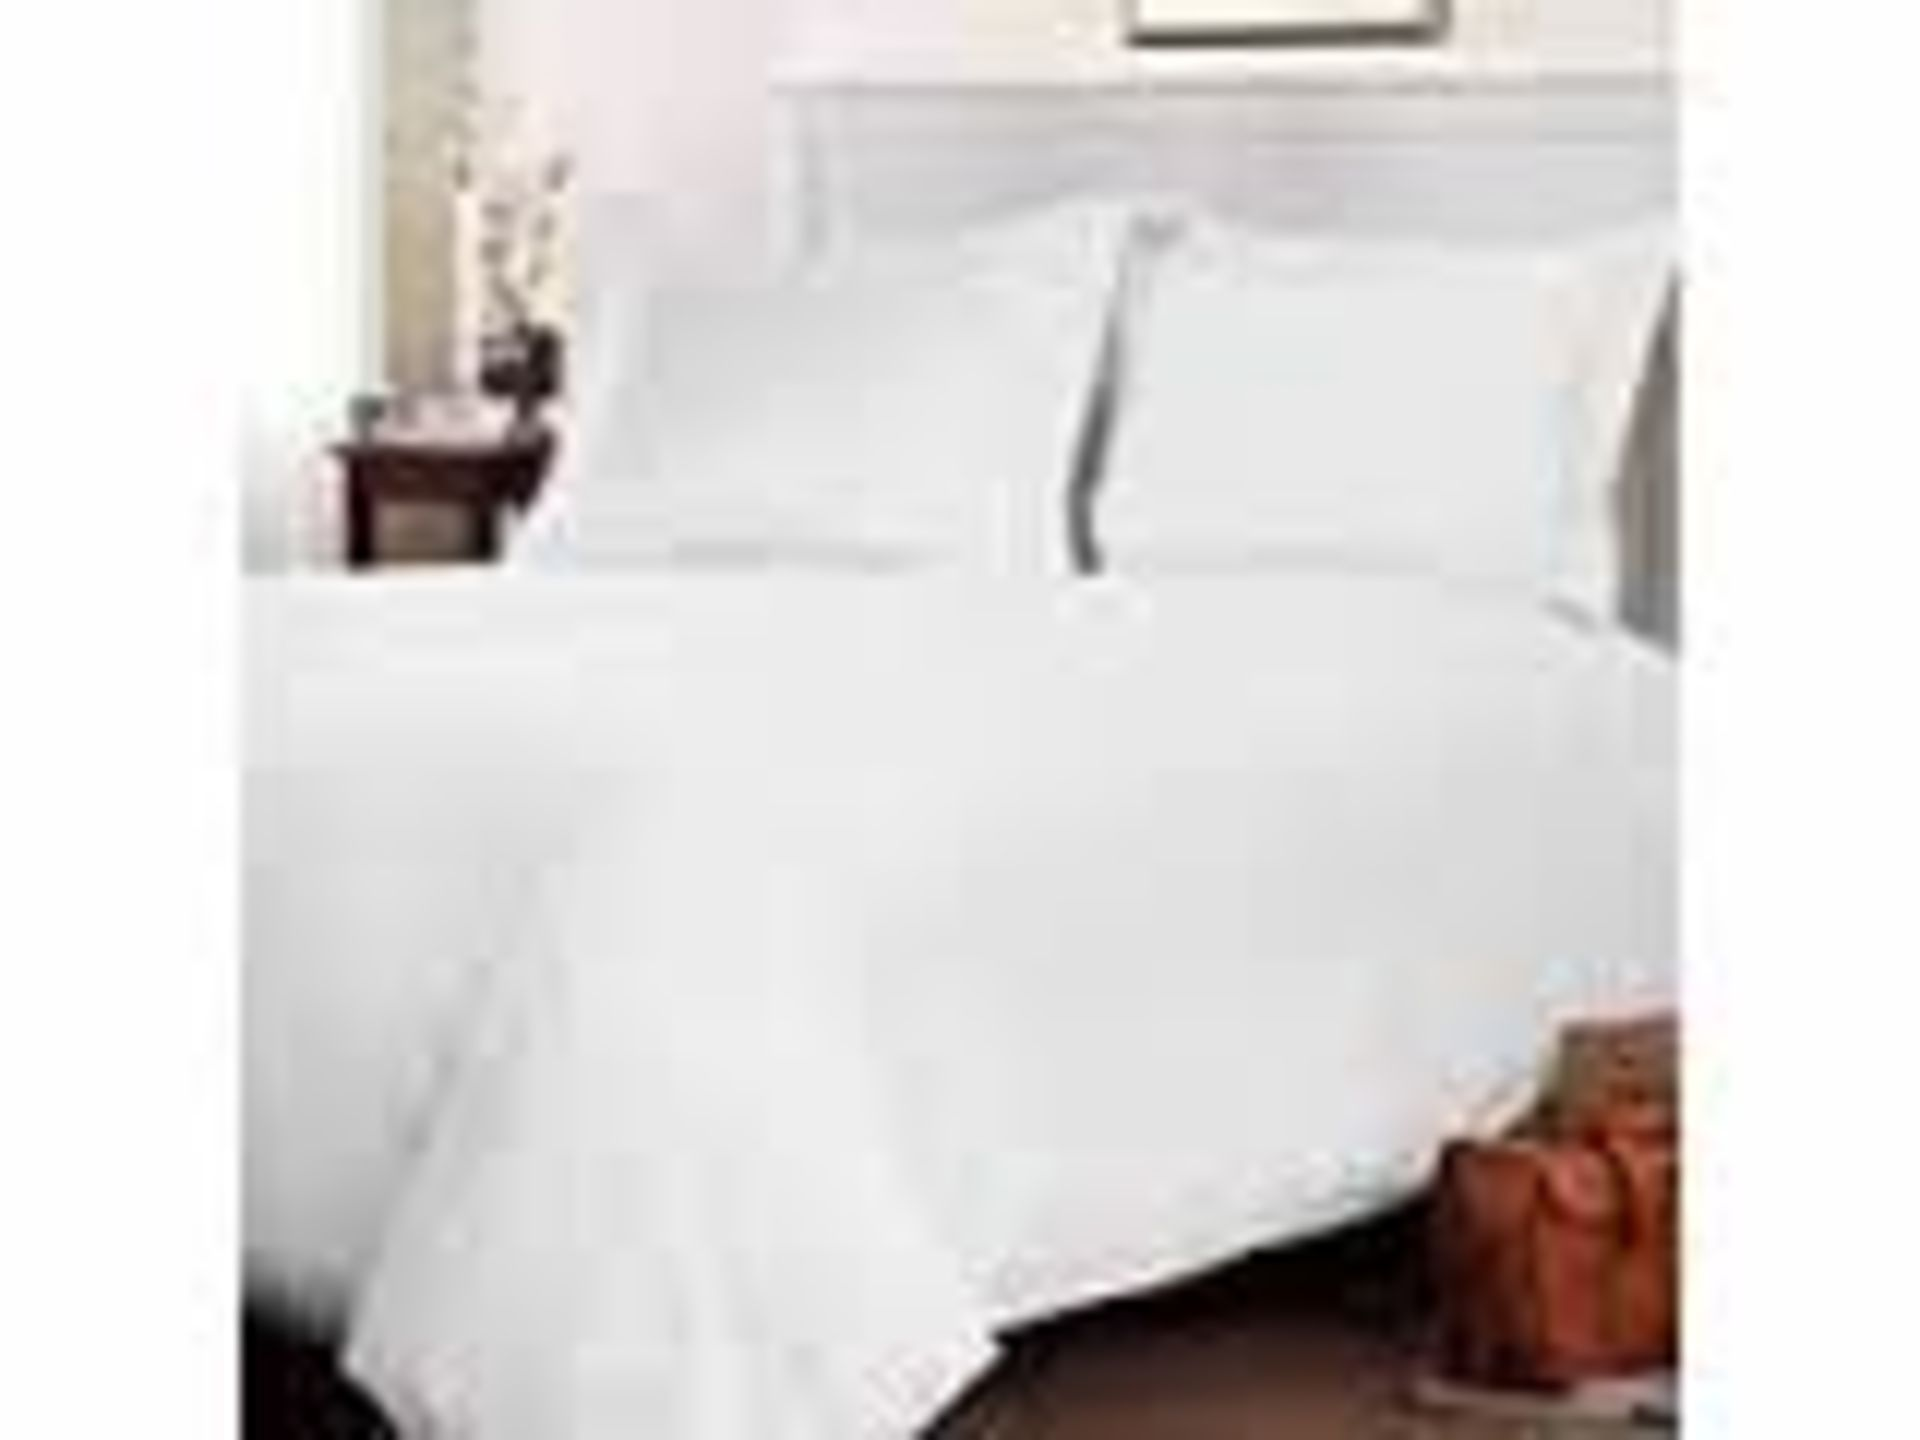 Lot 12535 - V Brand New Luxury Double Bed Plain Dye Fitted Sheets